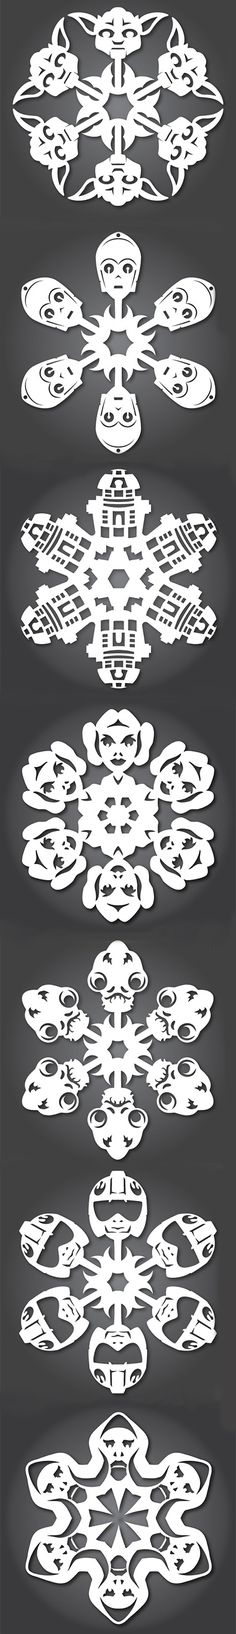 Star Wars Snowflake Templates.  Print them out and create a Star Wars winter wonderland!